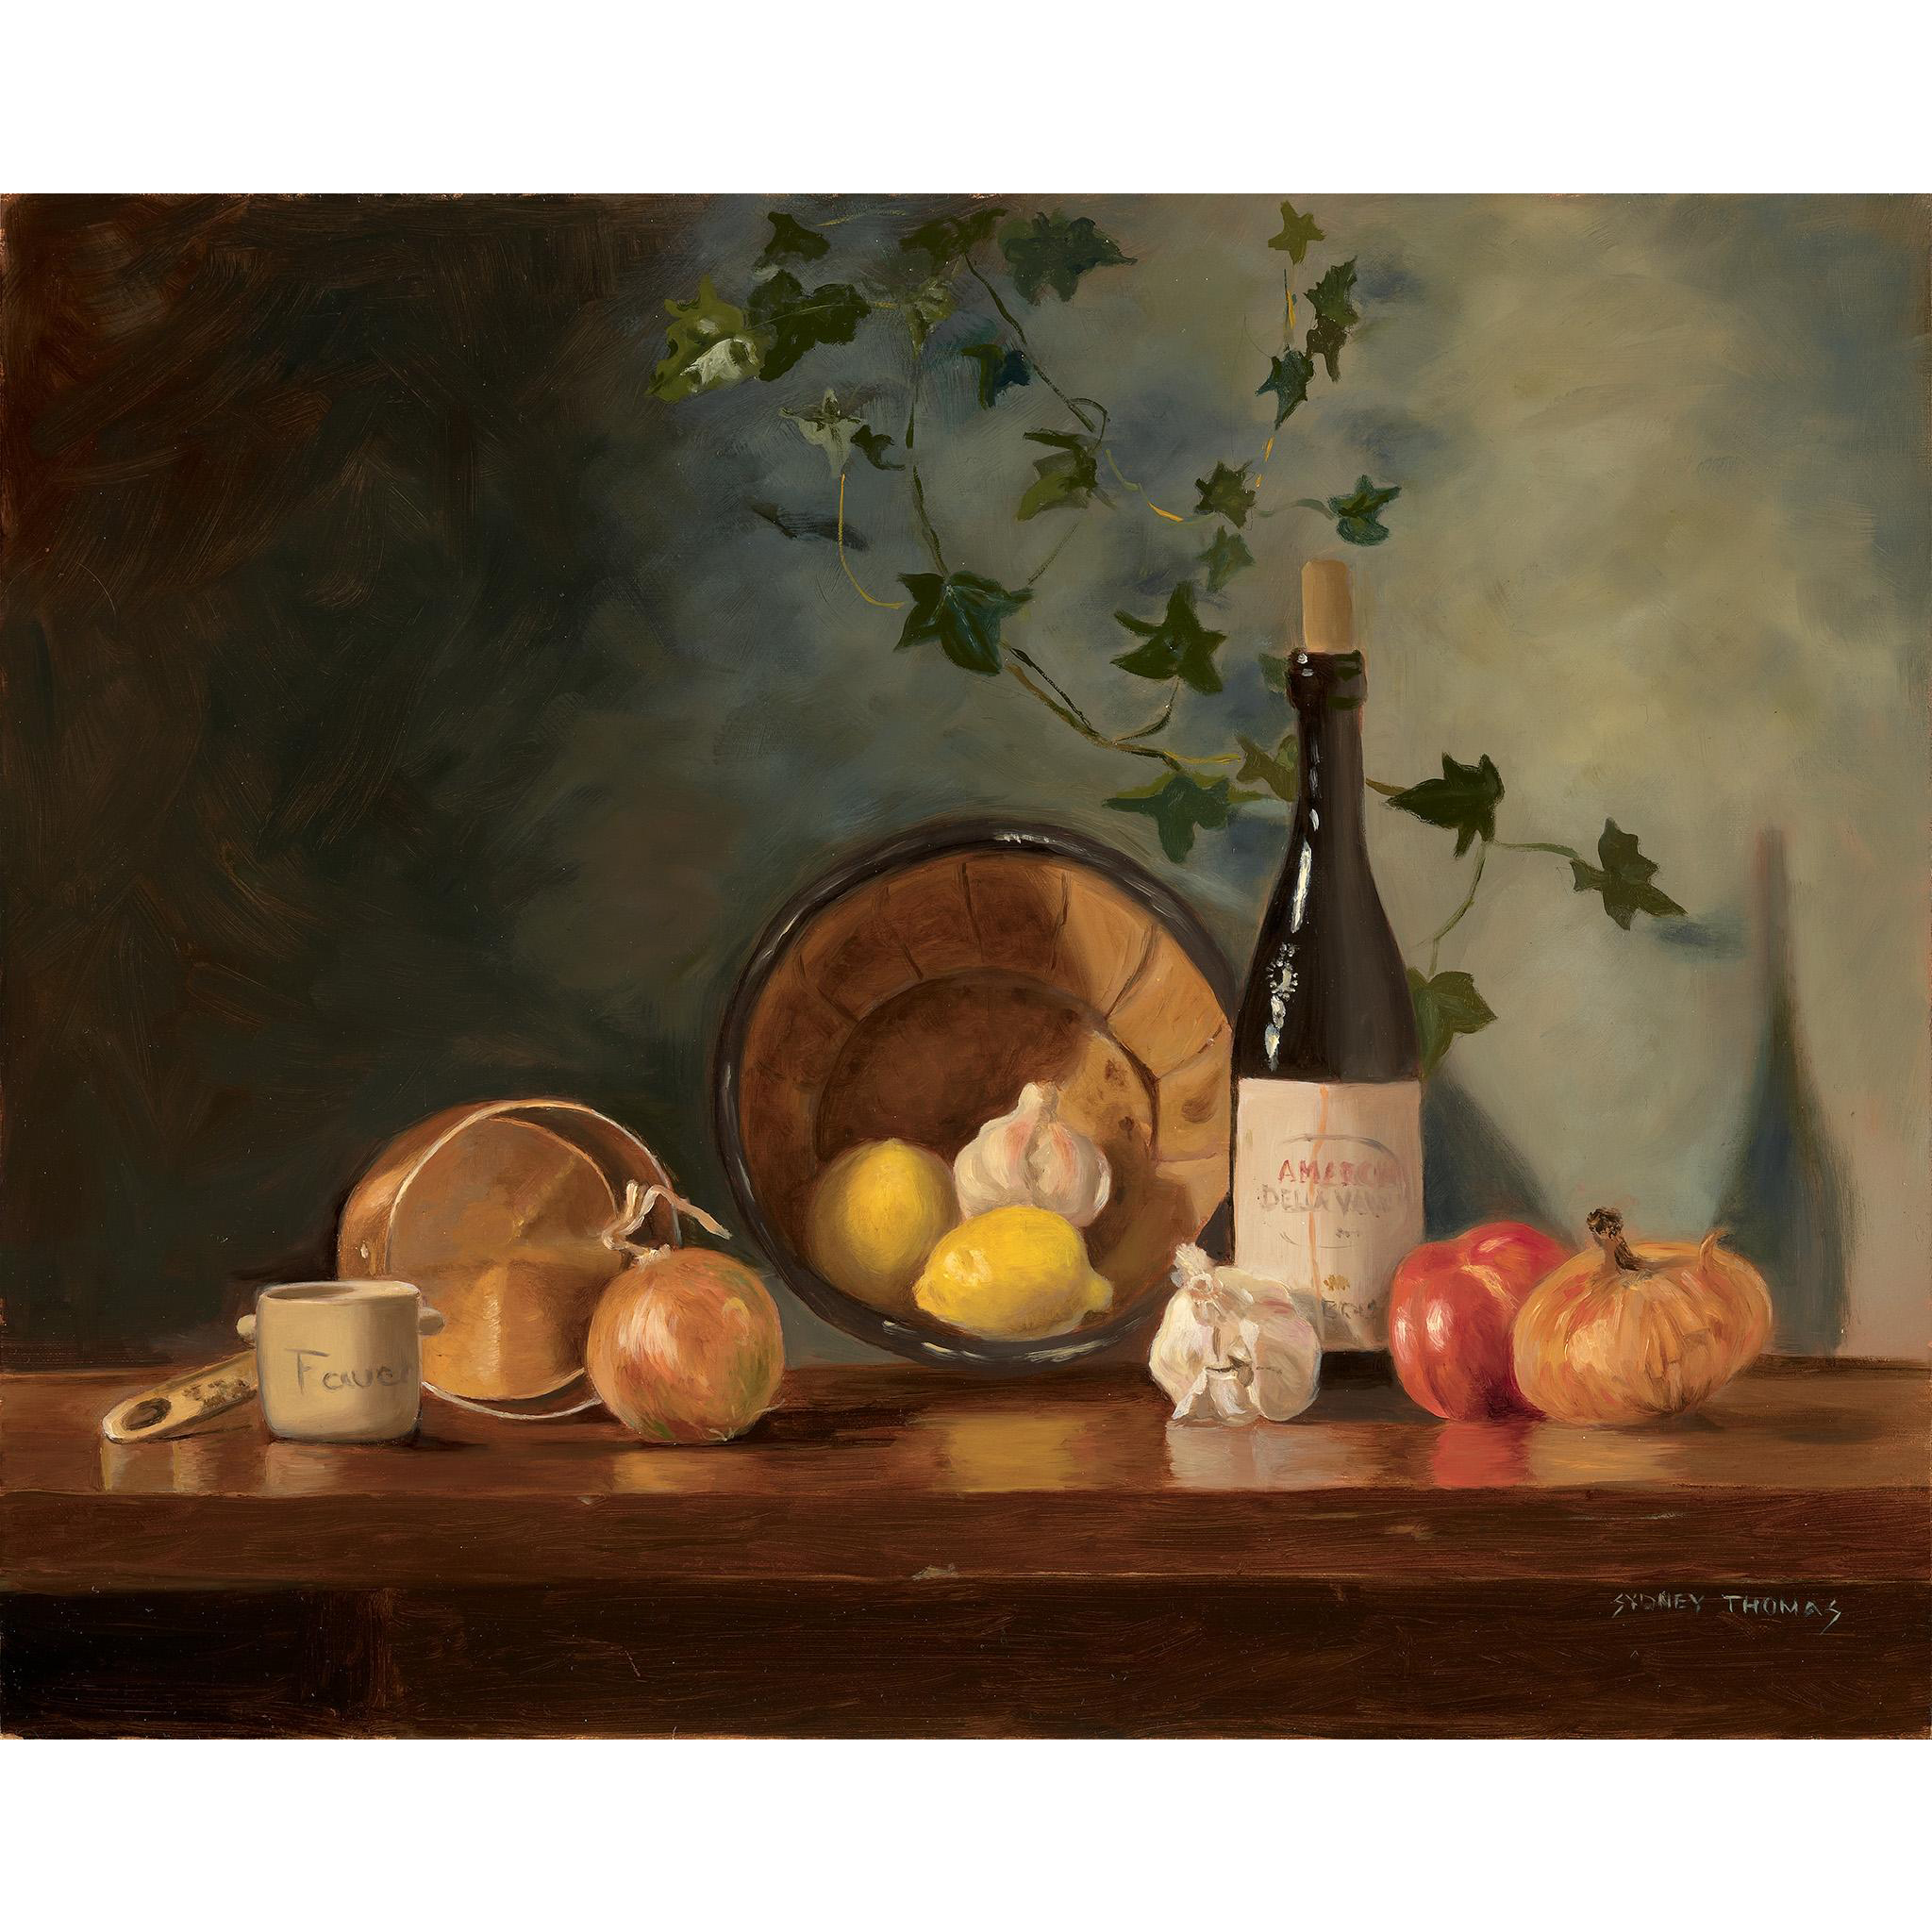 Sydney Thomas Oil Painting - Still Life with Onions and Red Wine